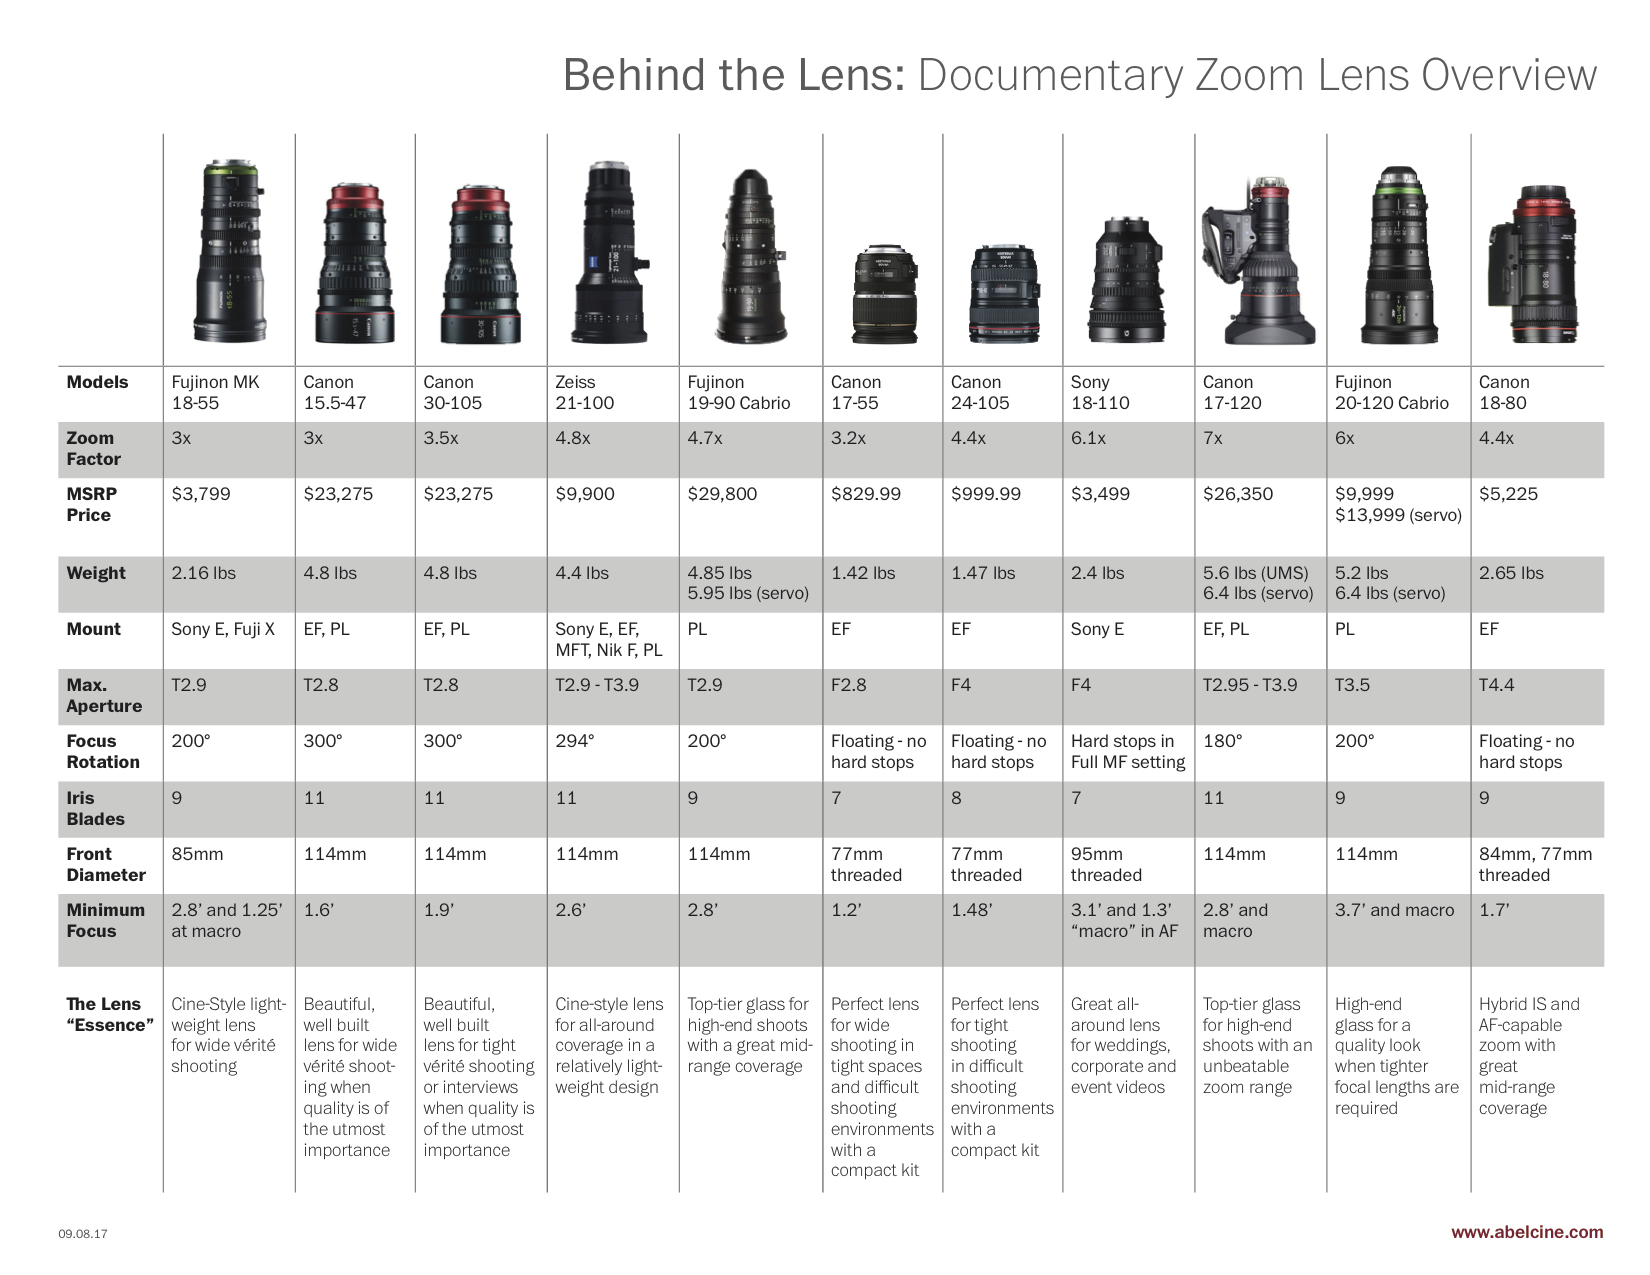 Behind the Lens: Documentary Zoom Lens Overview Chart